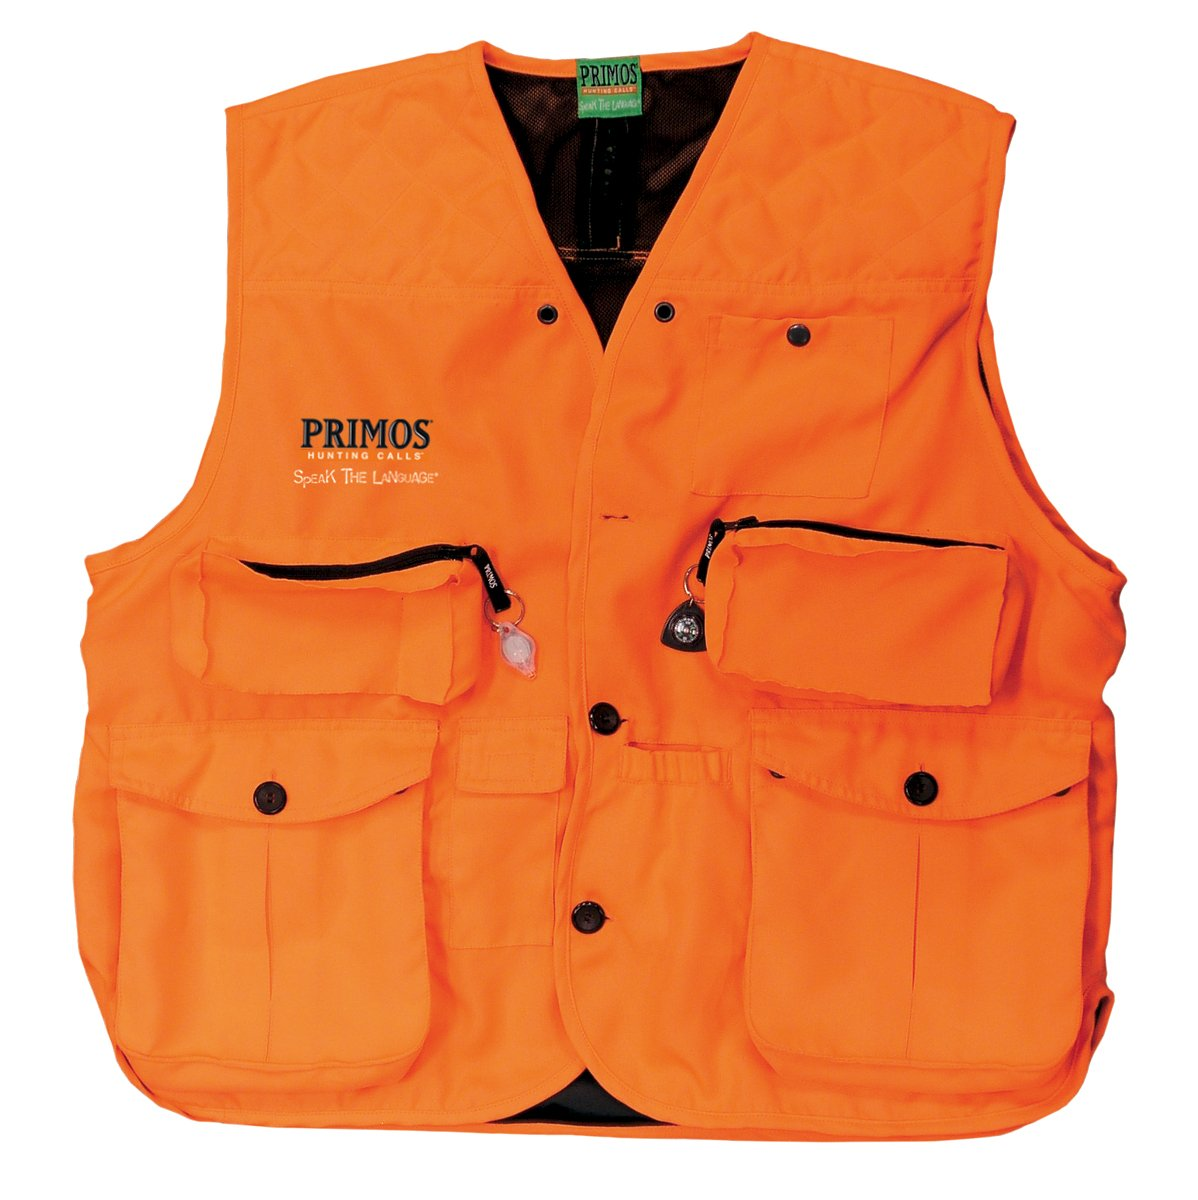 Primos Gunhunter's Vest (Blaze Orange, X-Large) by Primos Hunting